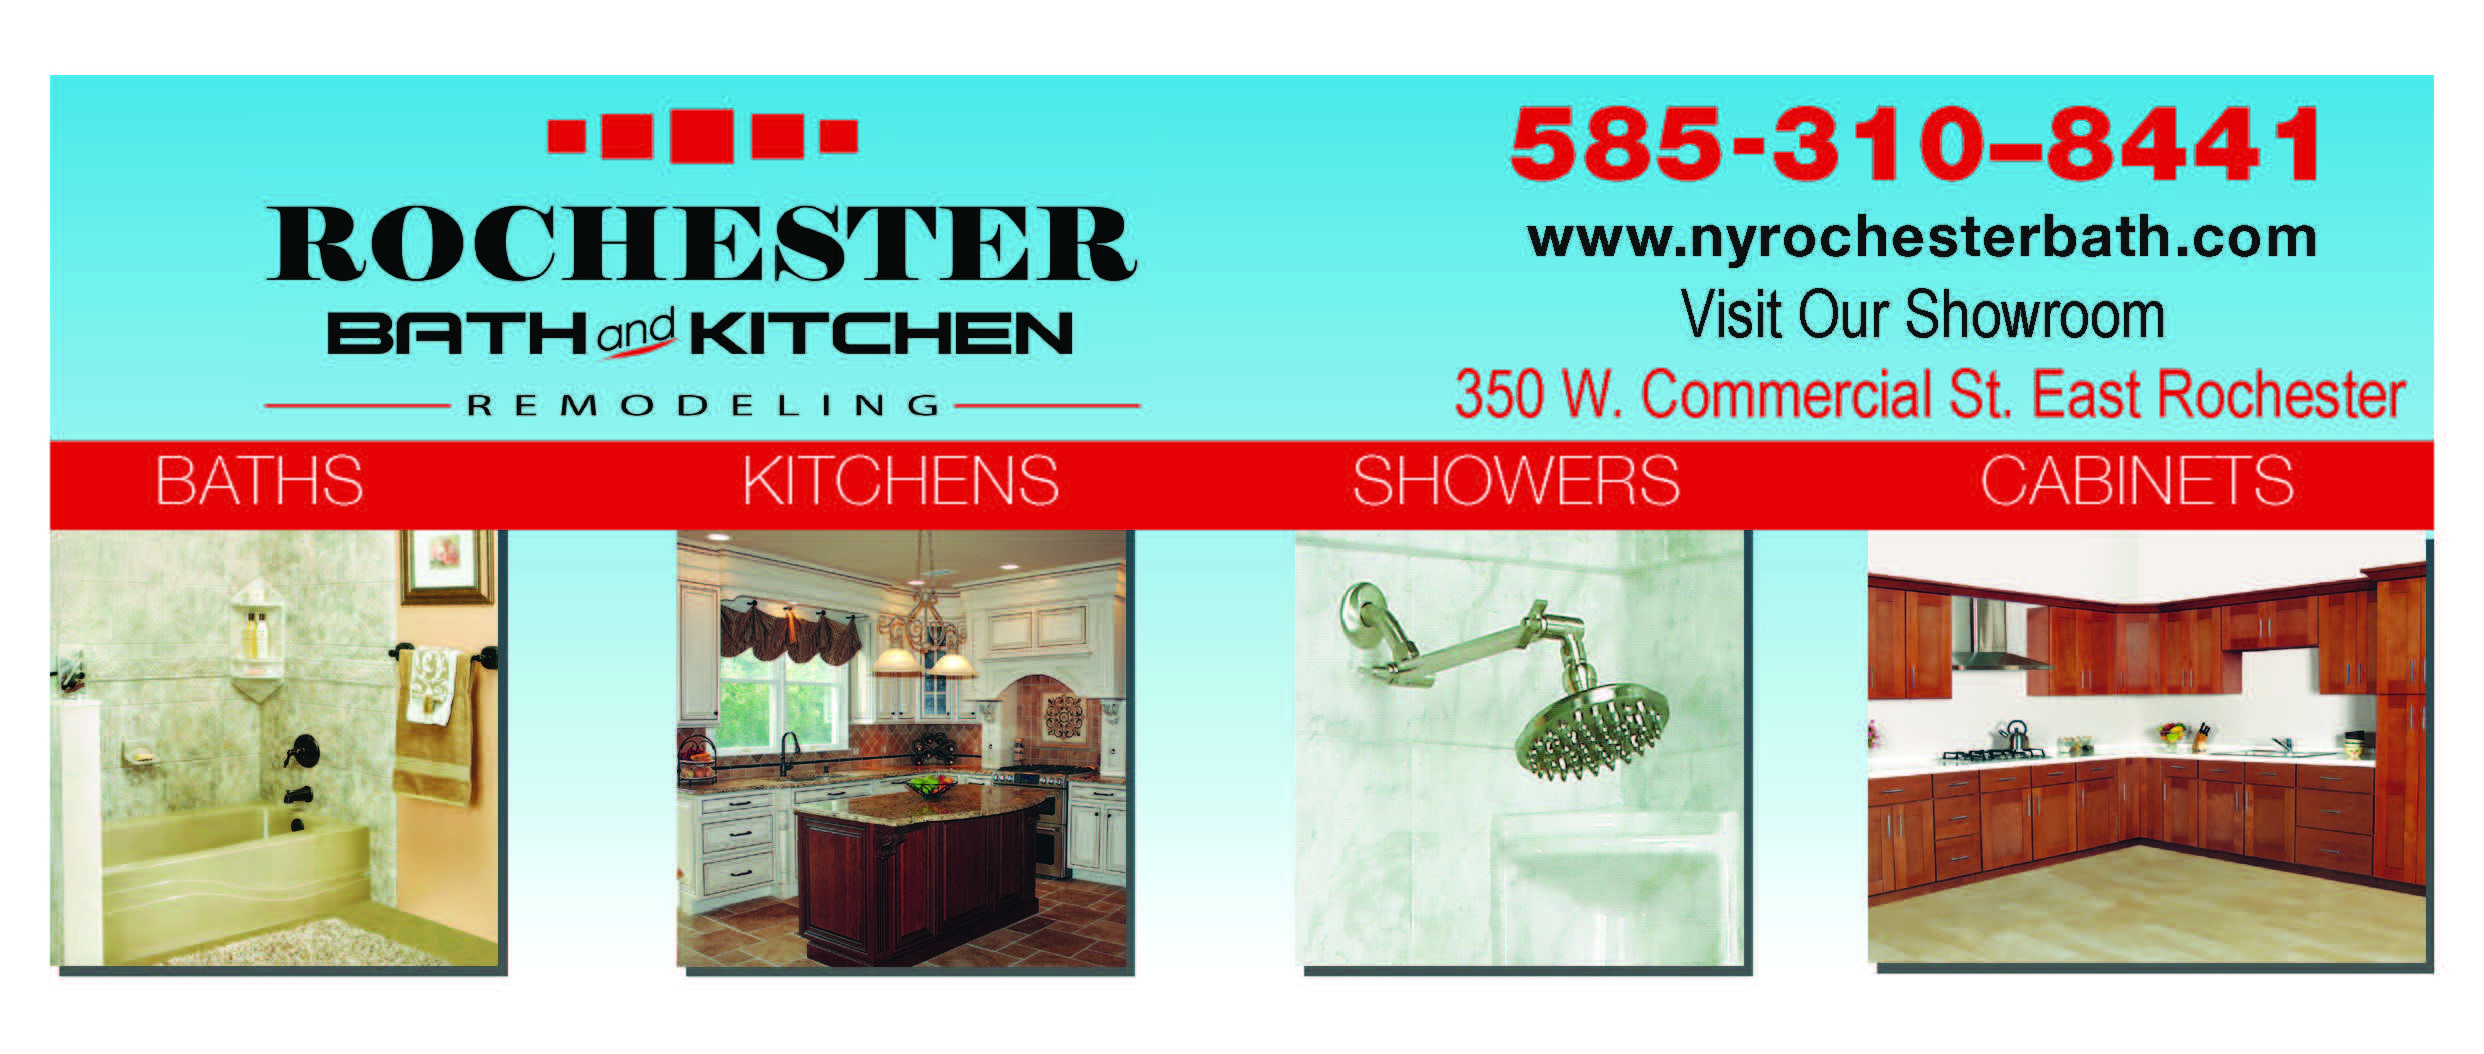 Save on your bathroom remodel with Excelaron! $350 OFF a complete ...